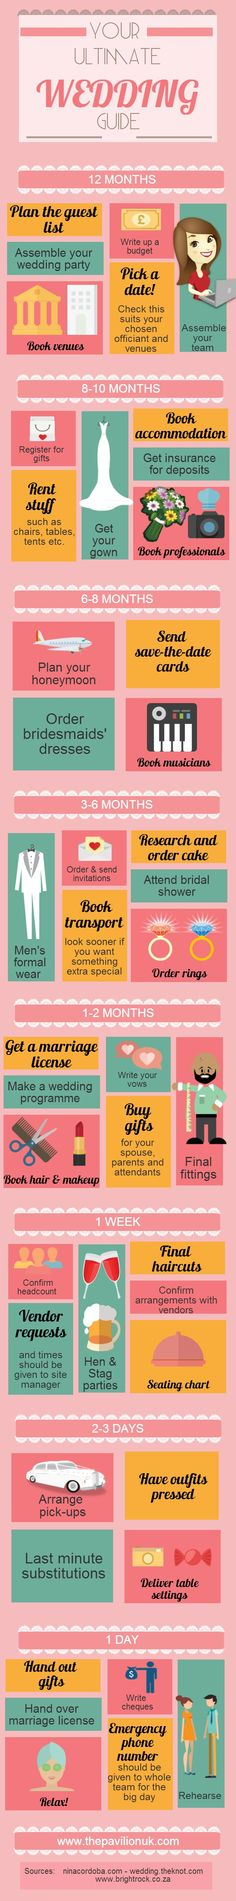 Month by Month #Wedding Guide created by The Pavillion: http://www.thepavilionuk.com